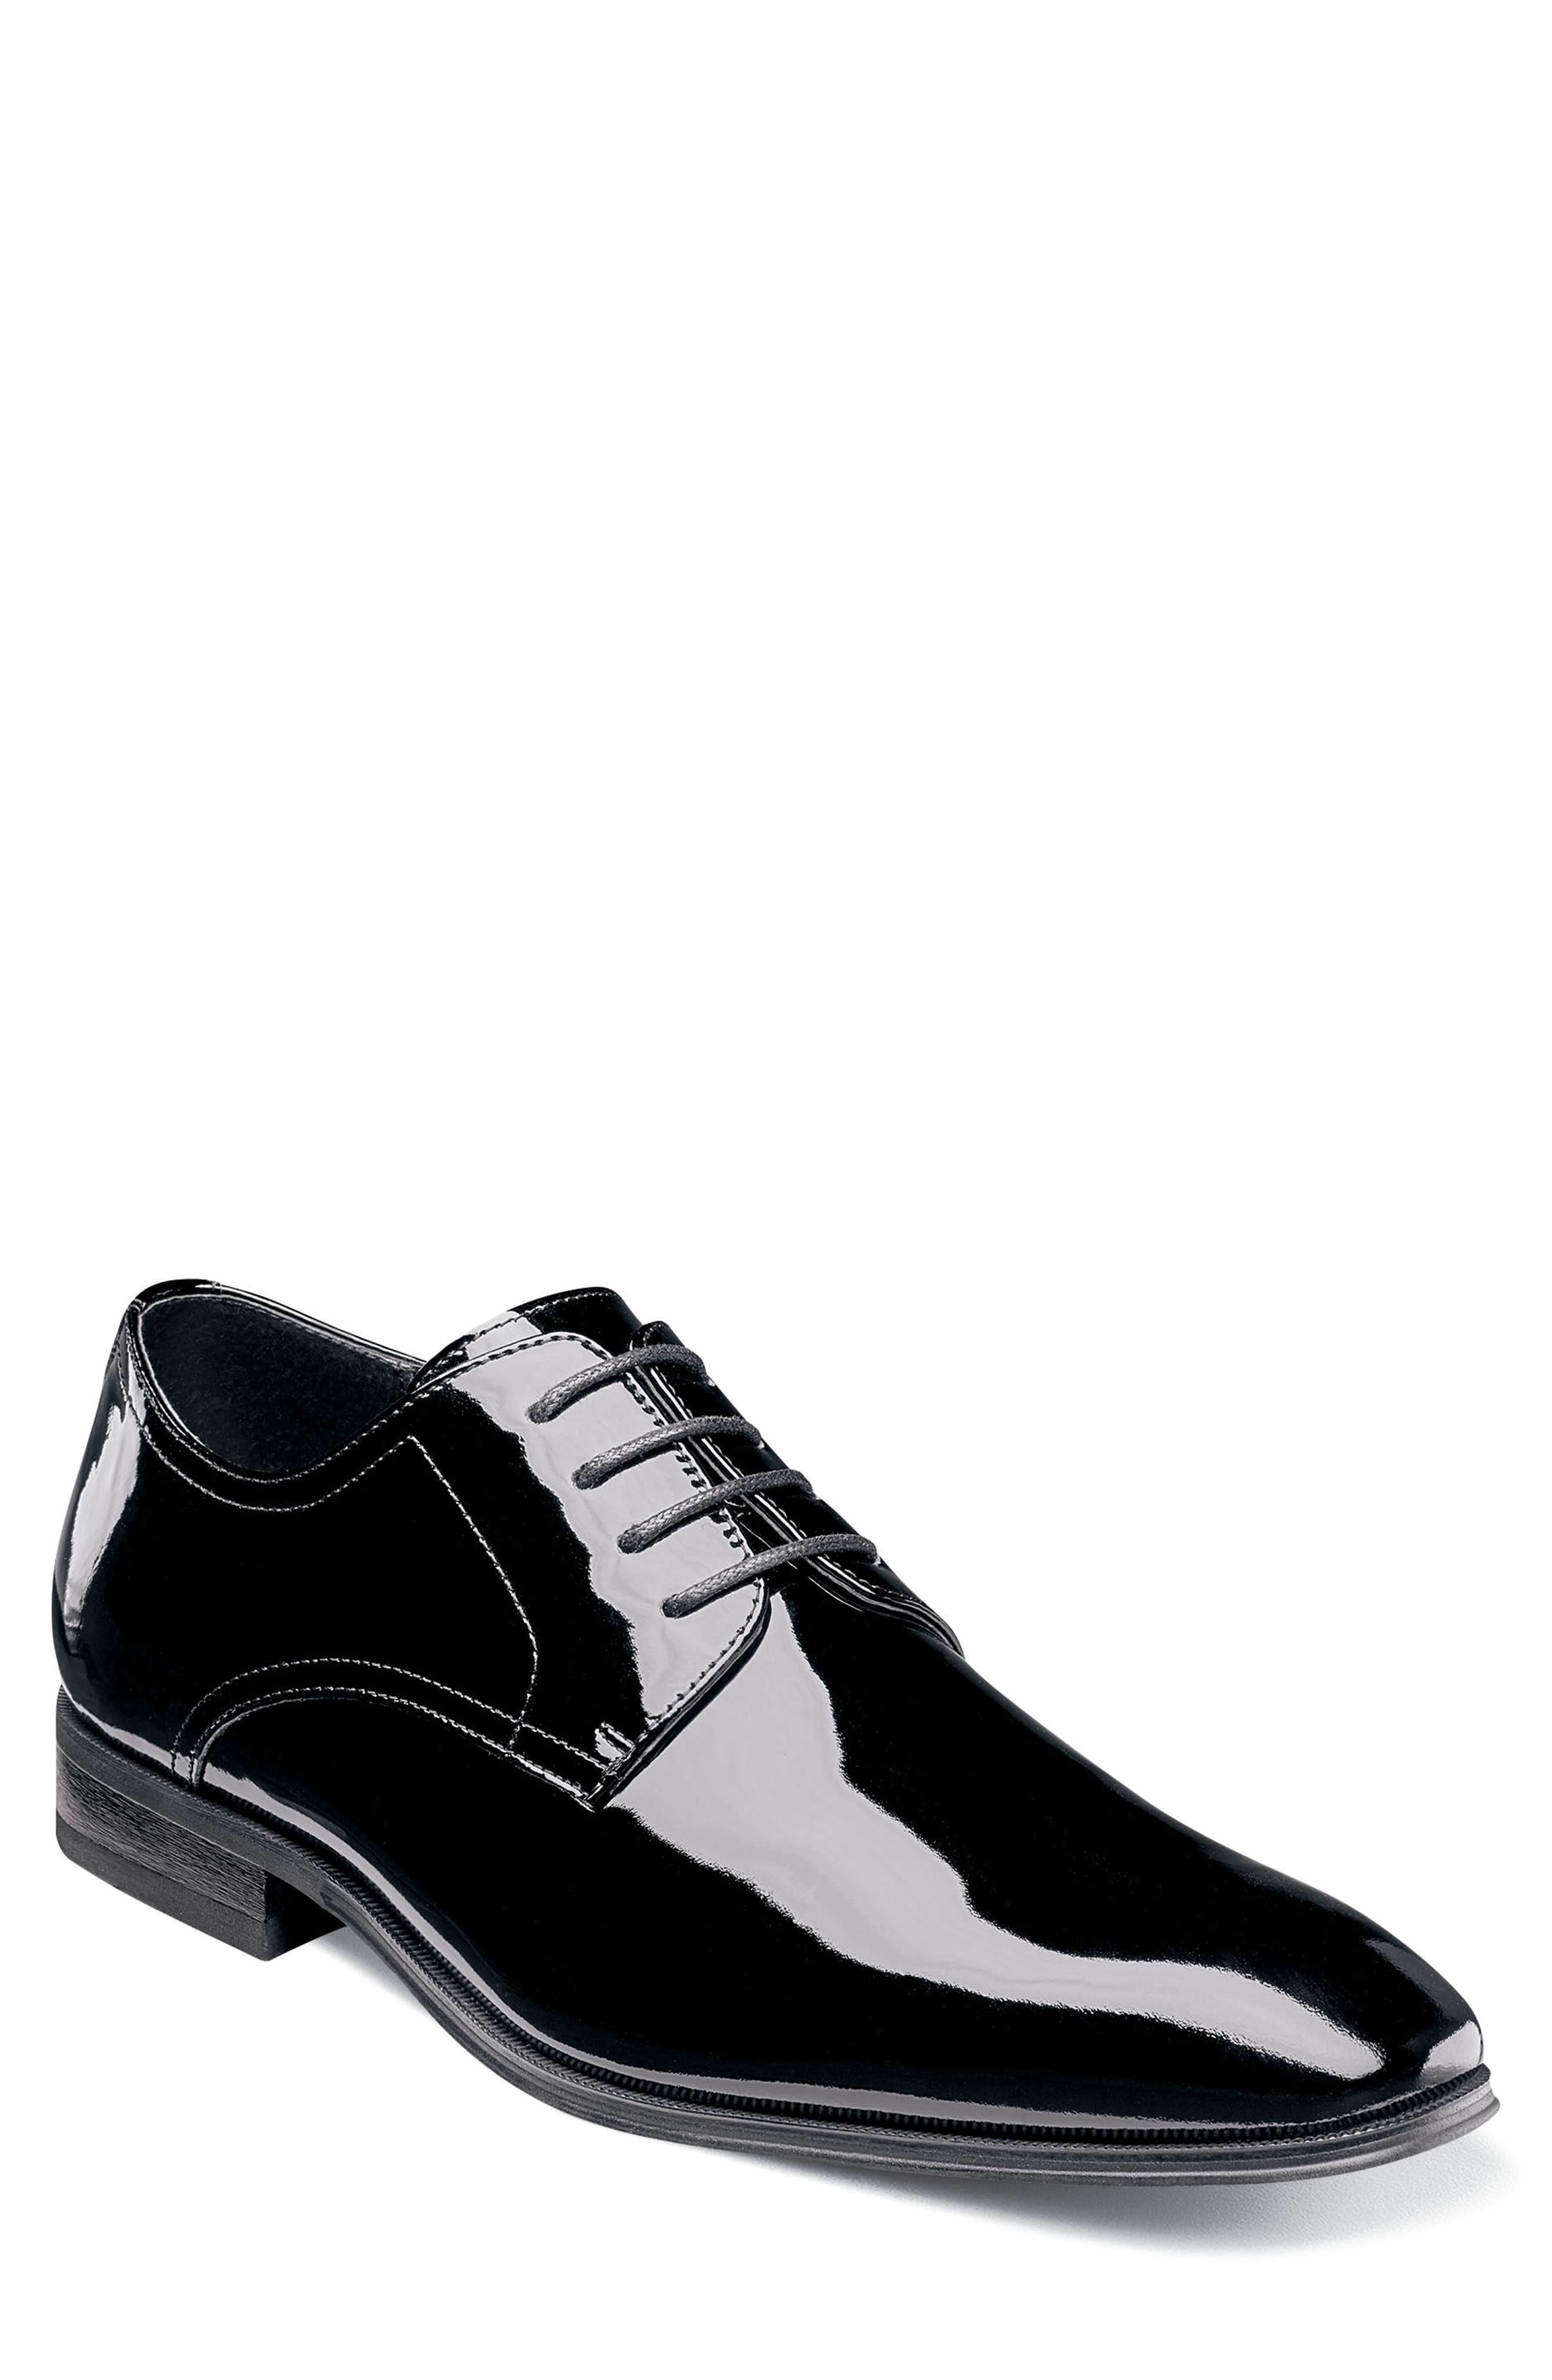 Alternate Image 1 Selected - Florsheim Tux Plain Toe Derby (Men)